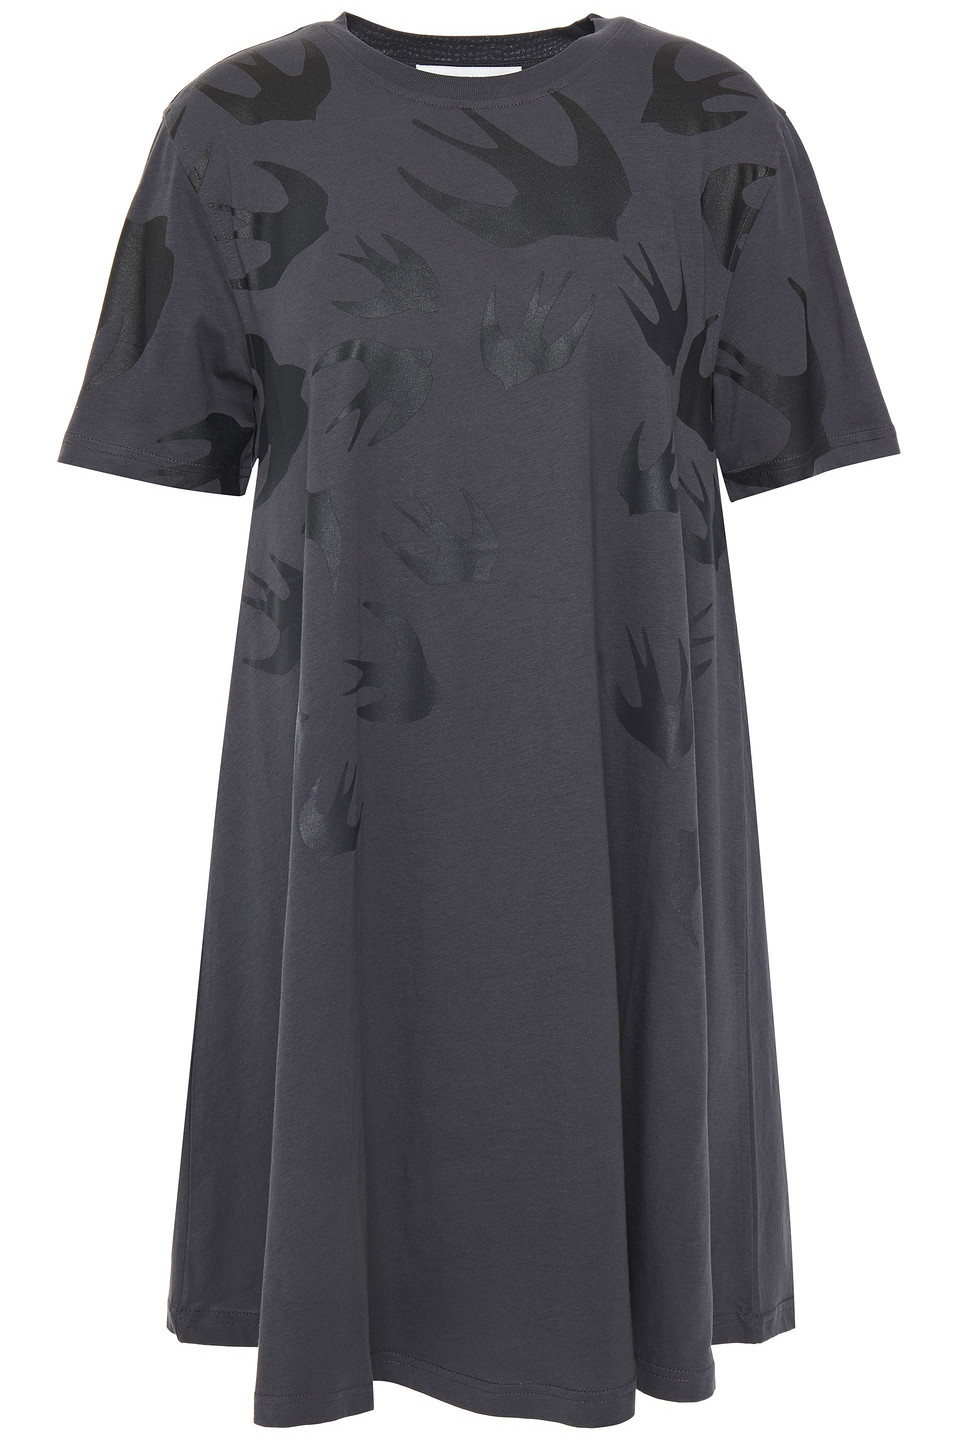 McQ Alexander Mcqueen | Mcq Alexander Mcqueen Woman Printed Cotton-jersey Mini Dress Anthracite | Clouty